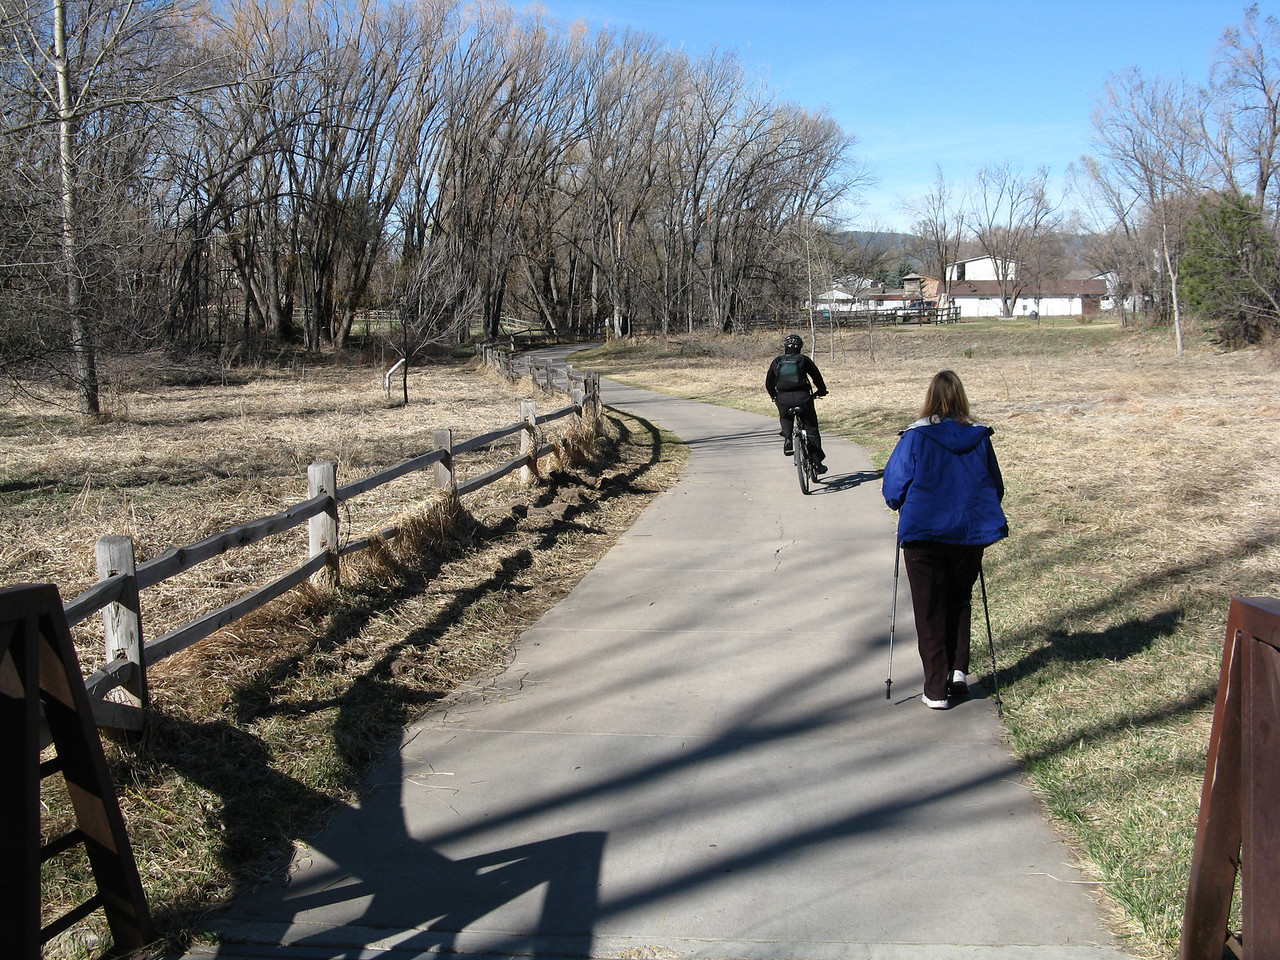 12-03-21 Ft Collins 005